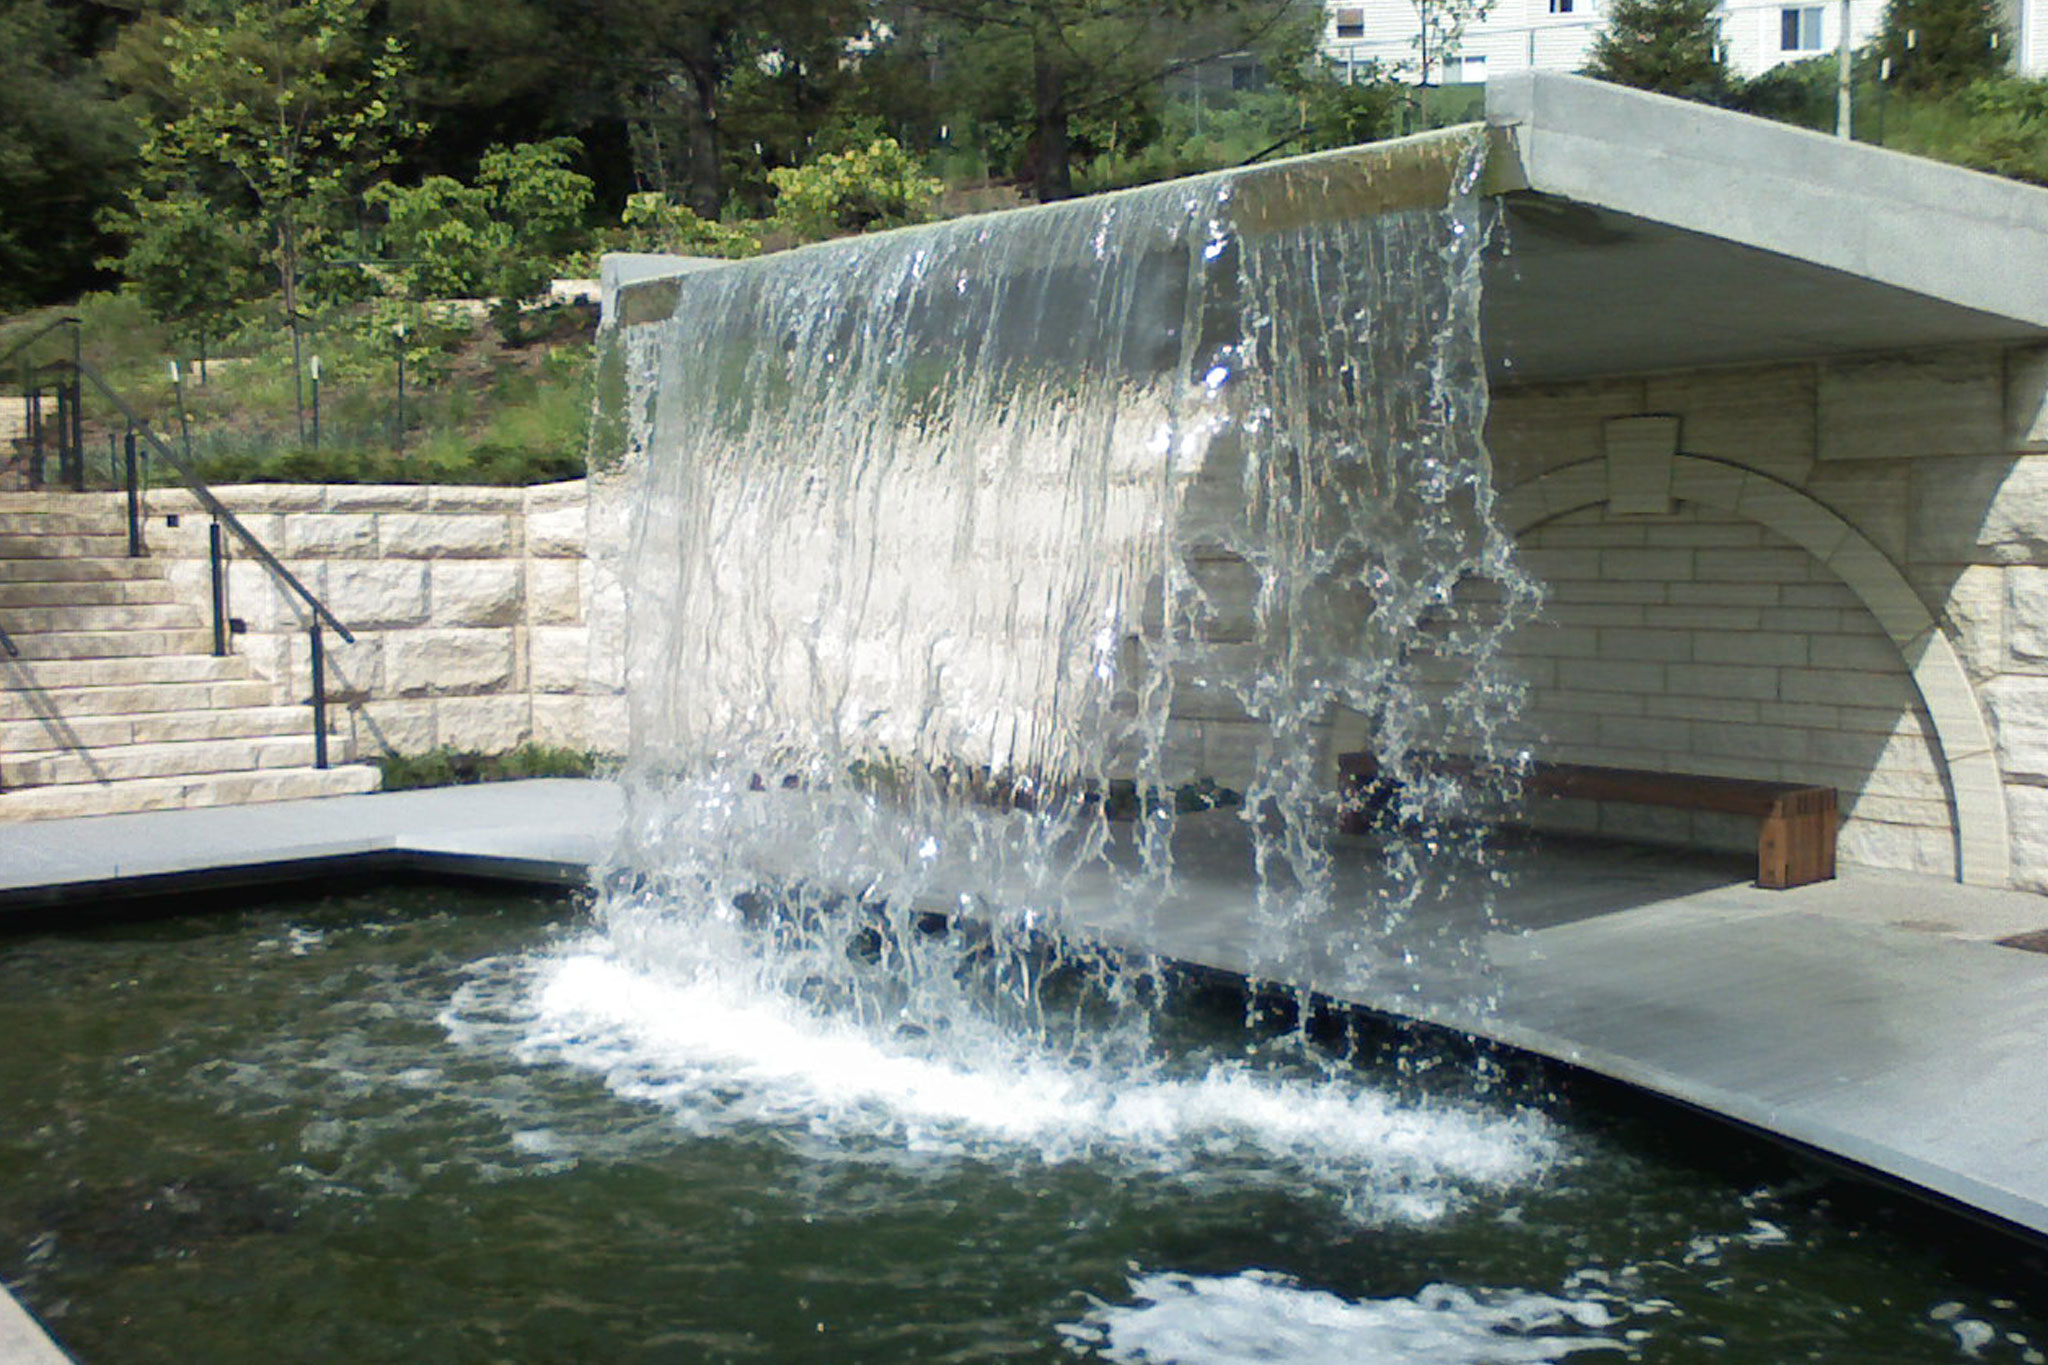 Des moines botanical garden waterfall delta fountains for Waterfall garden feature